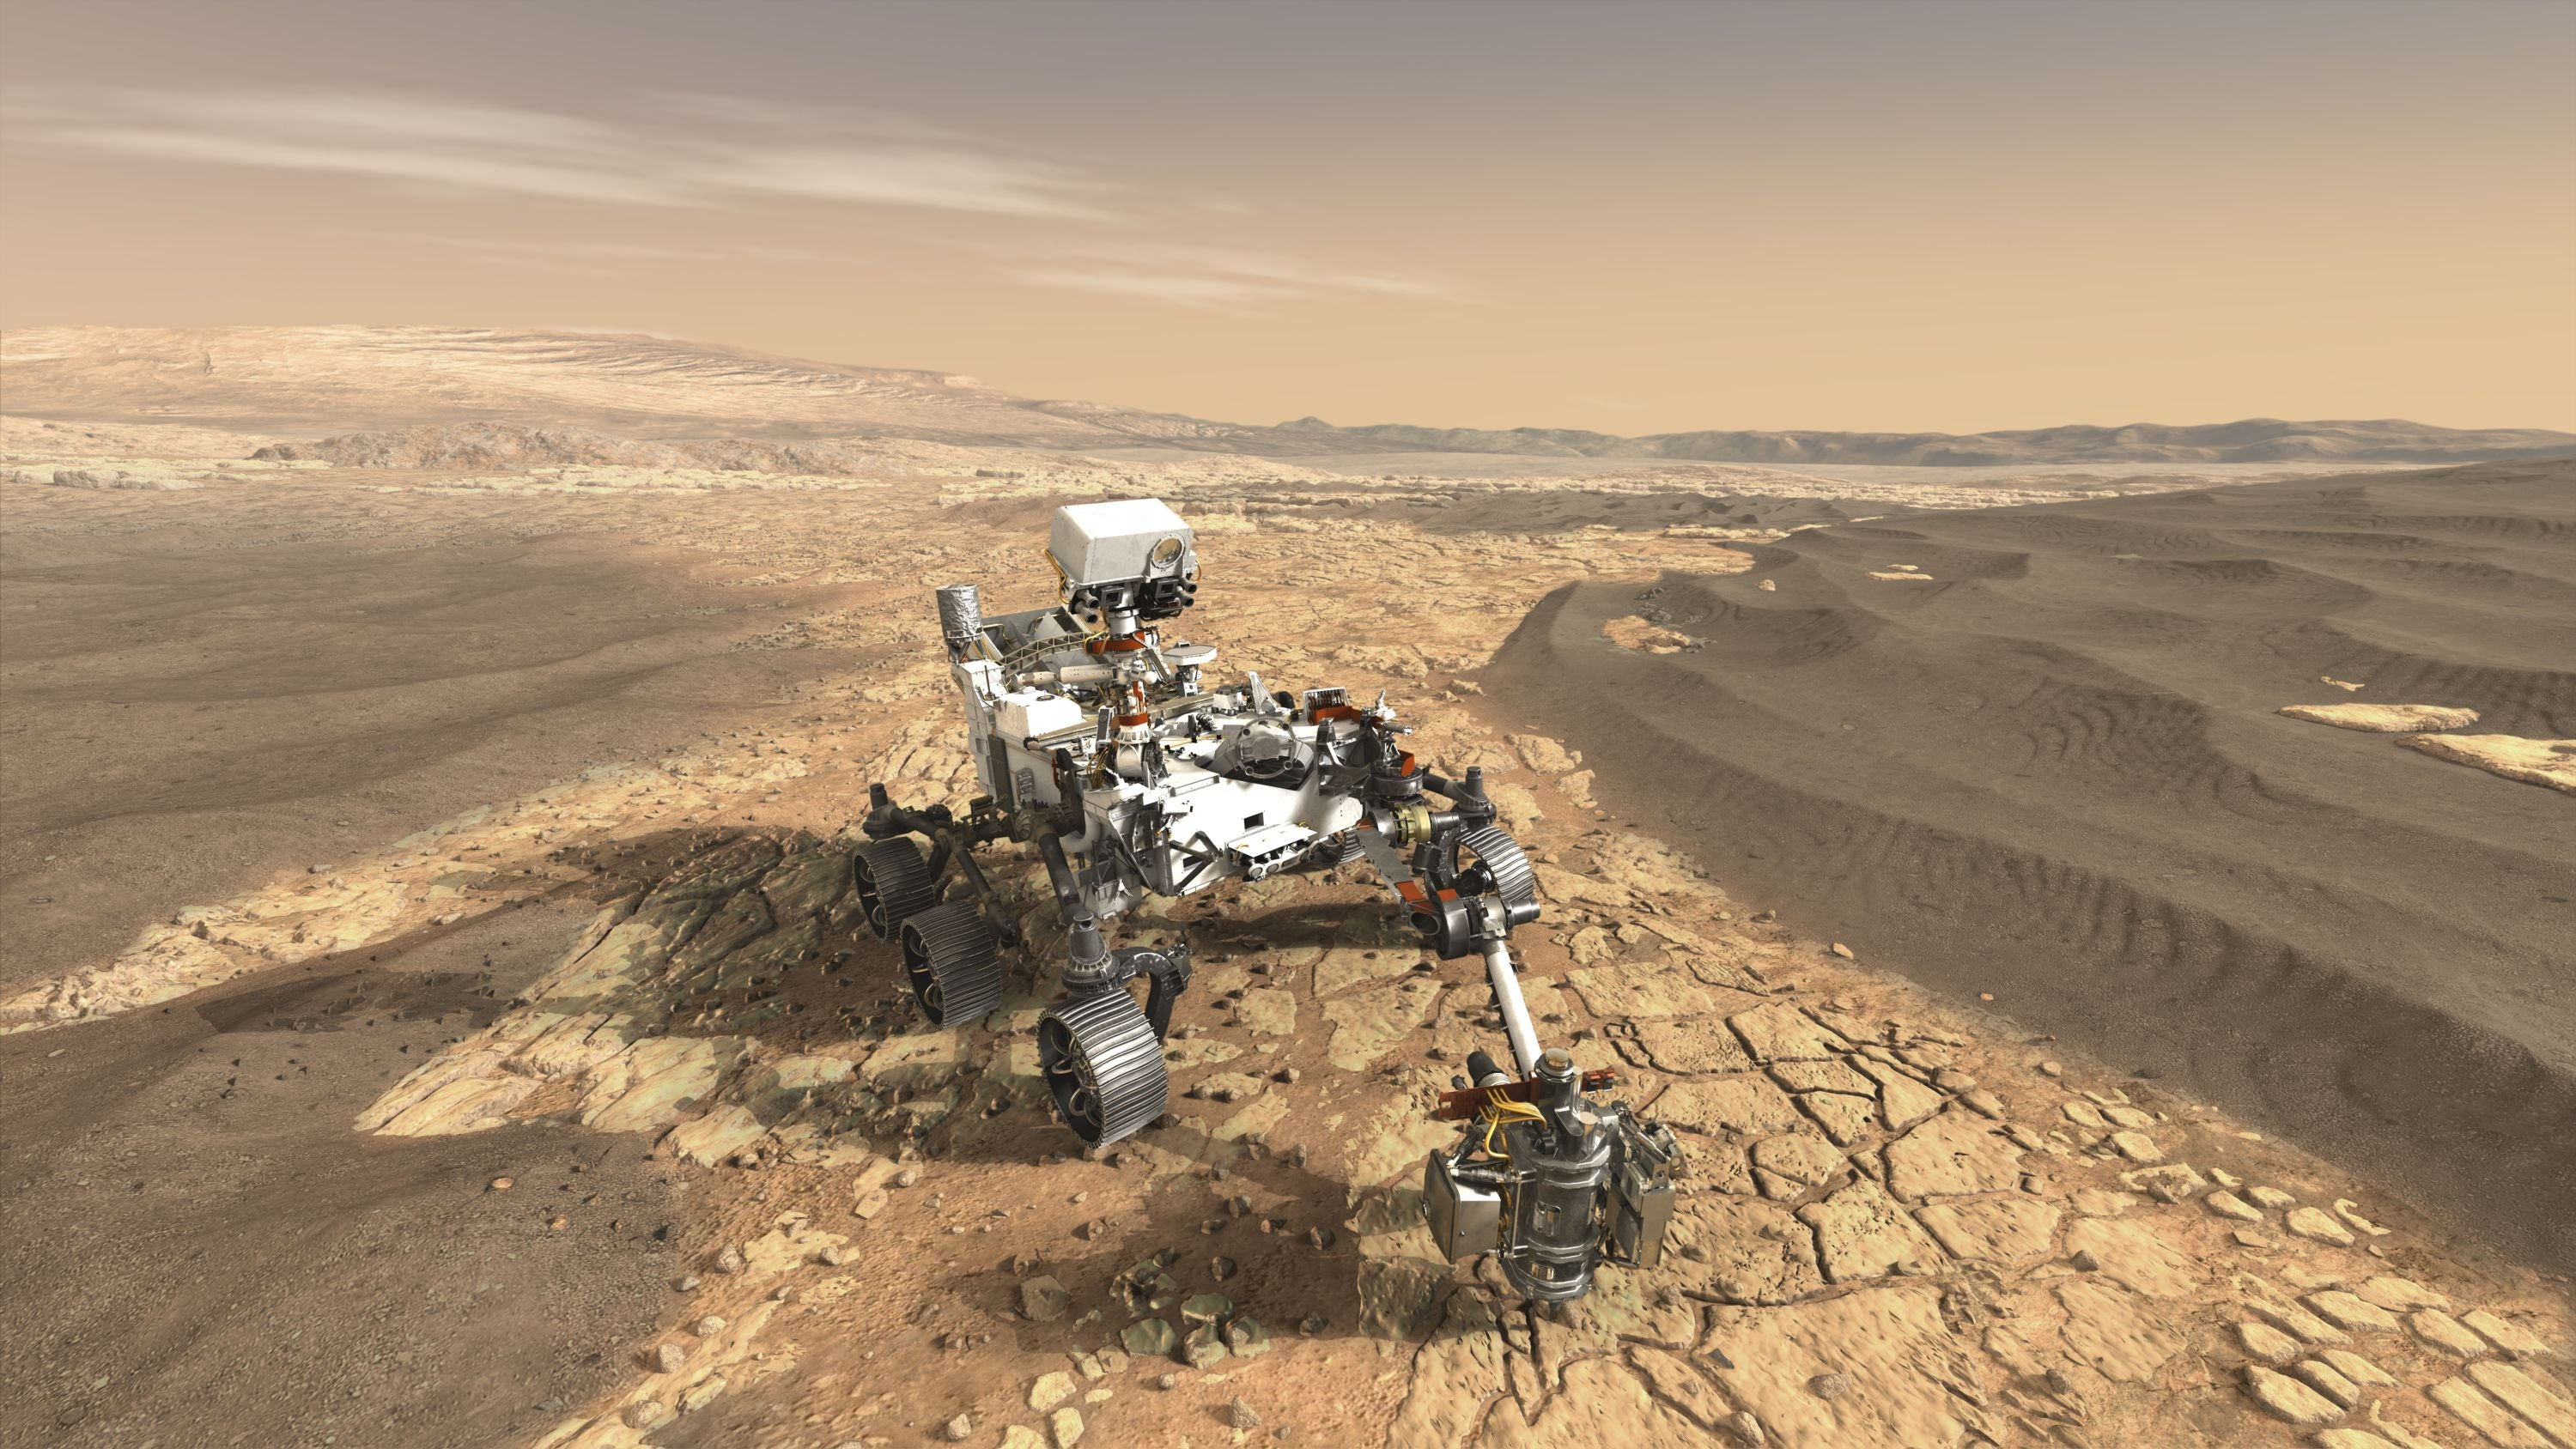 space rover on earth - photo #13